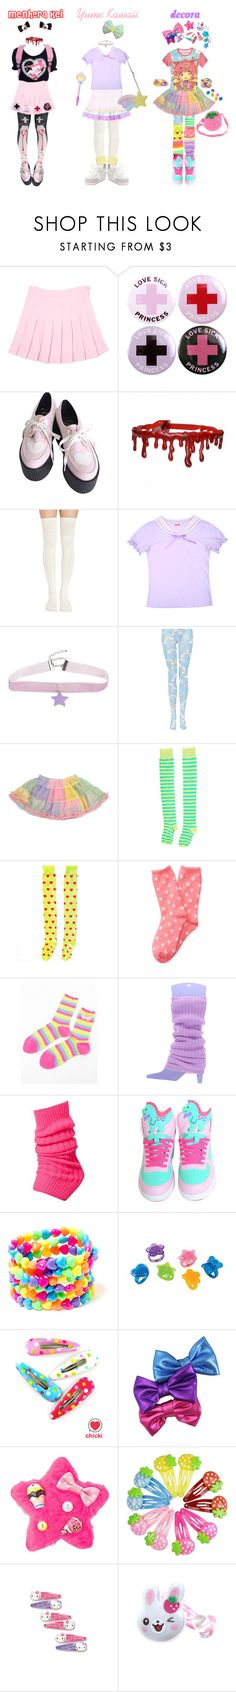 """""""Fashion Styles: Menhera Kei ♥ Yume Kawaii ♥ Decora"""" by scoutvenus ❤ liked on Polyvore featuring Meadham Kirchhoff, Hot Topic, Galaxxxy, Aéropostale, Clips, Fit-to-Kill and claire's"""